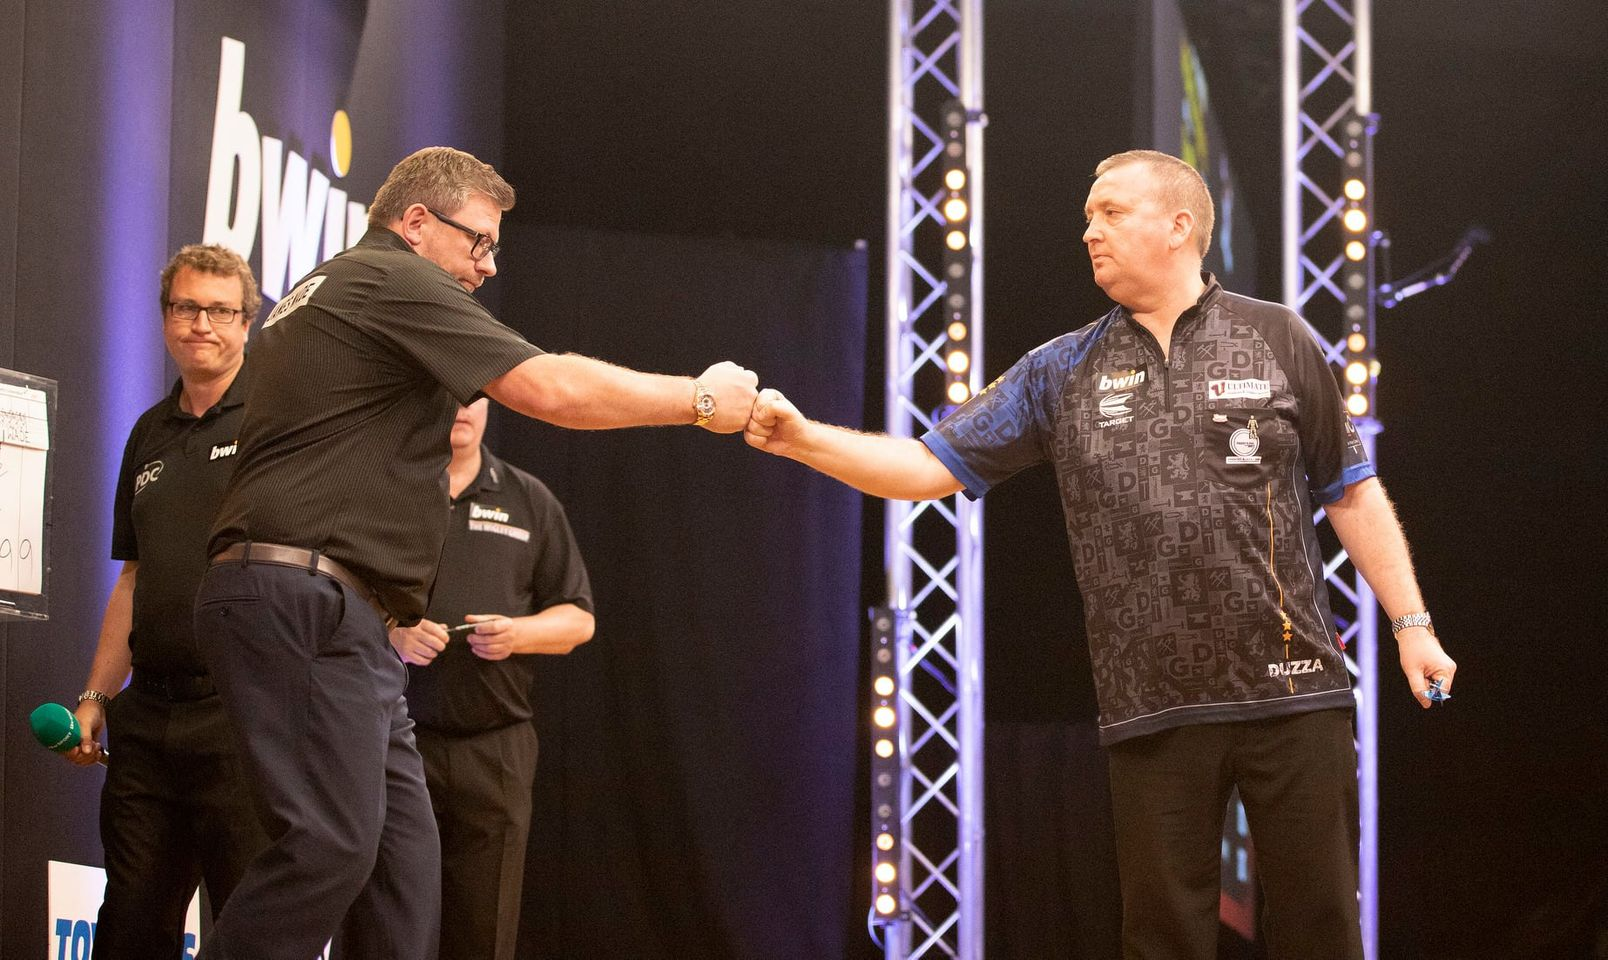 James Wade vs Glen Durrant